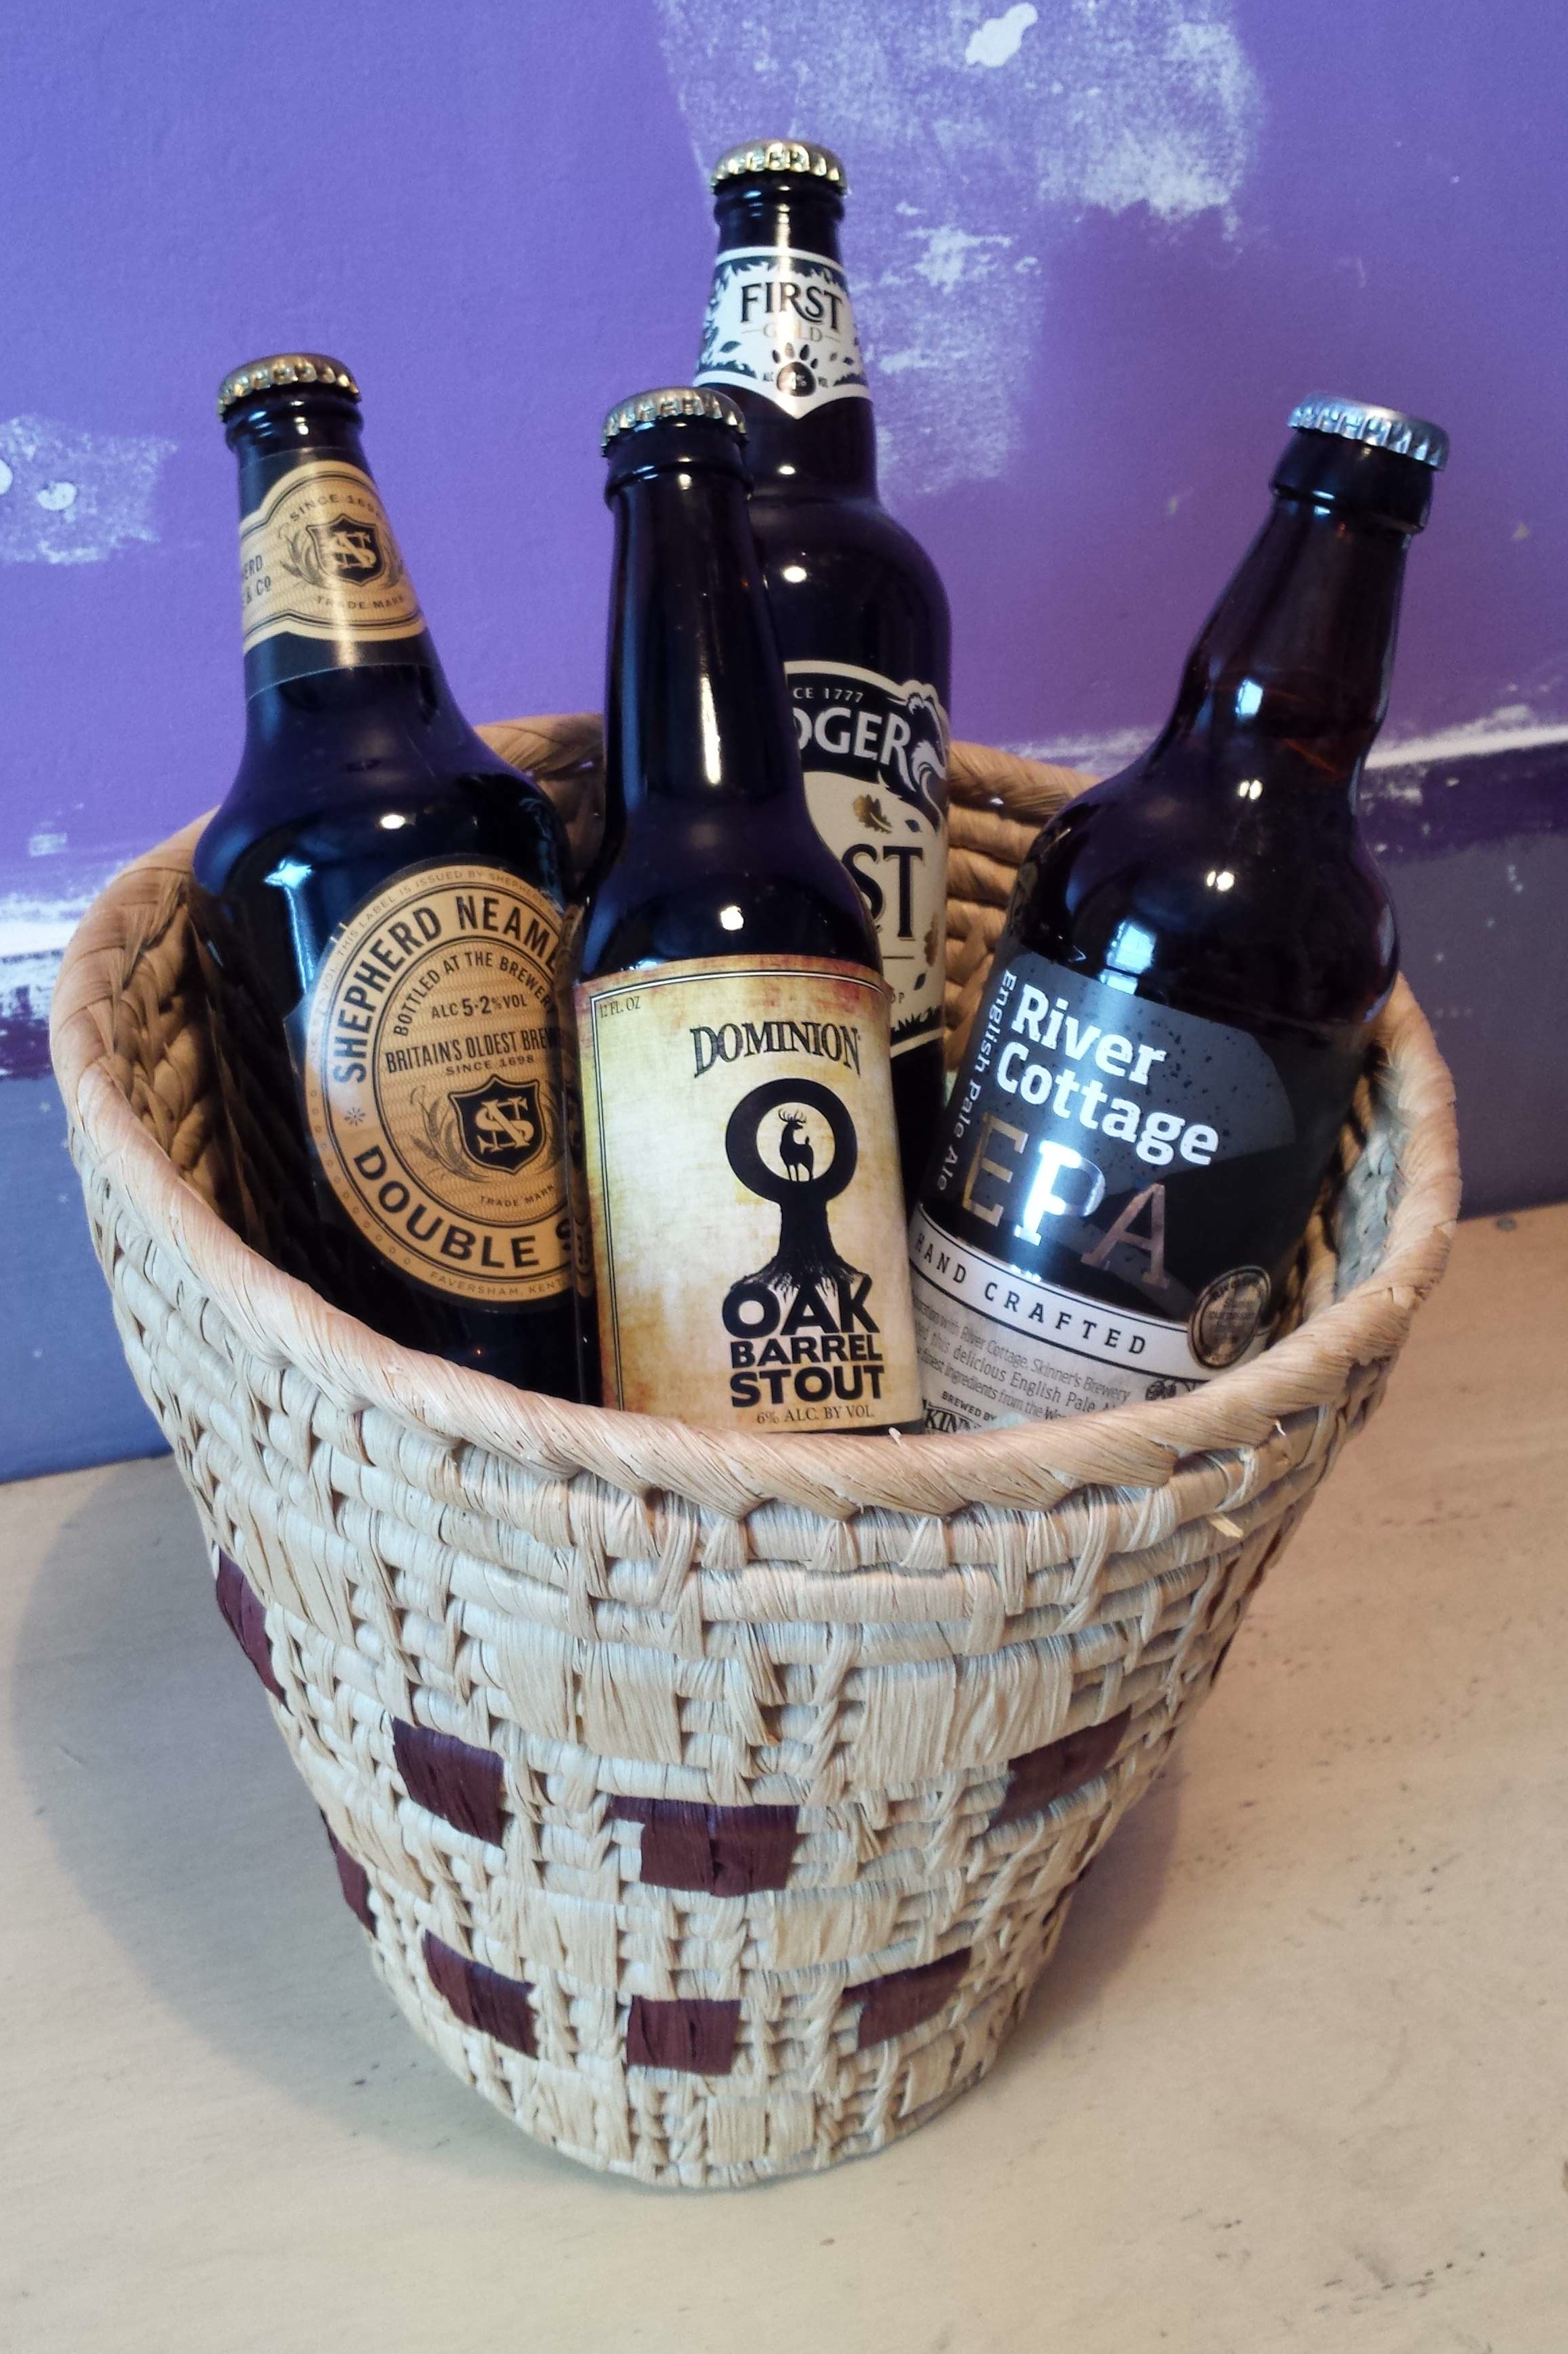 Christmas gifts for beer lovers – A FemAle View on Beer